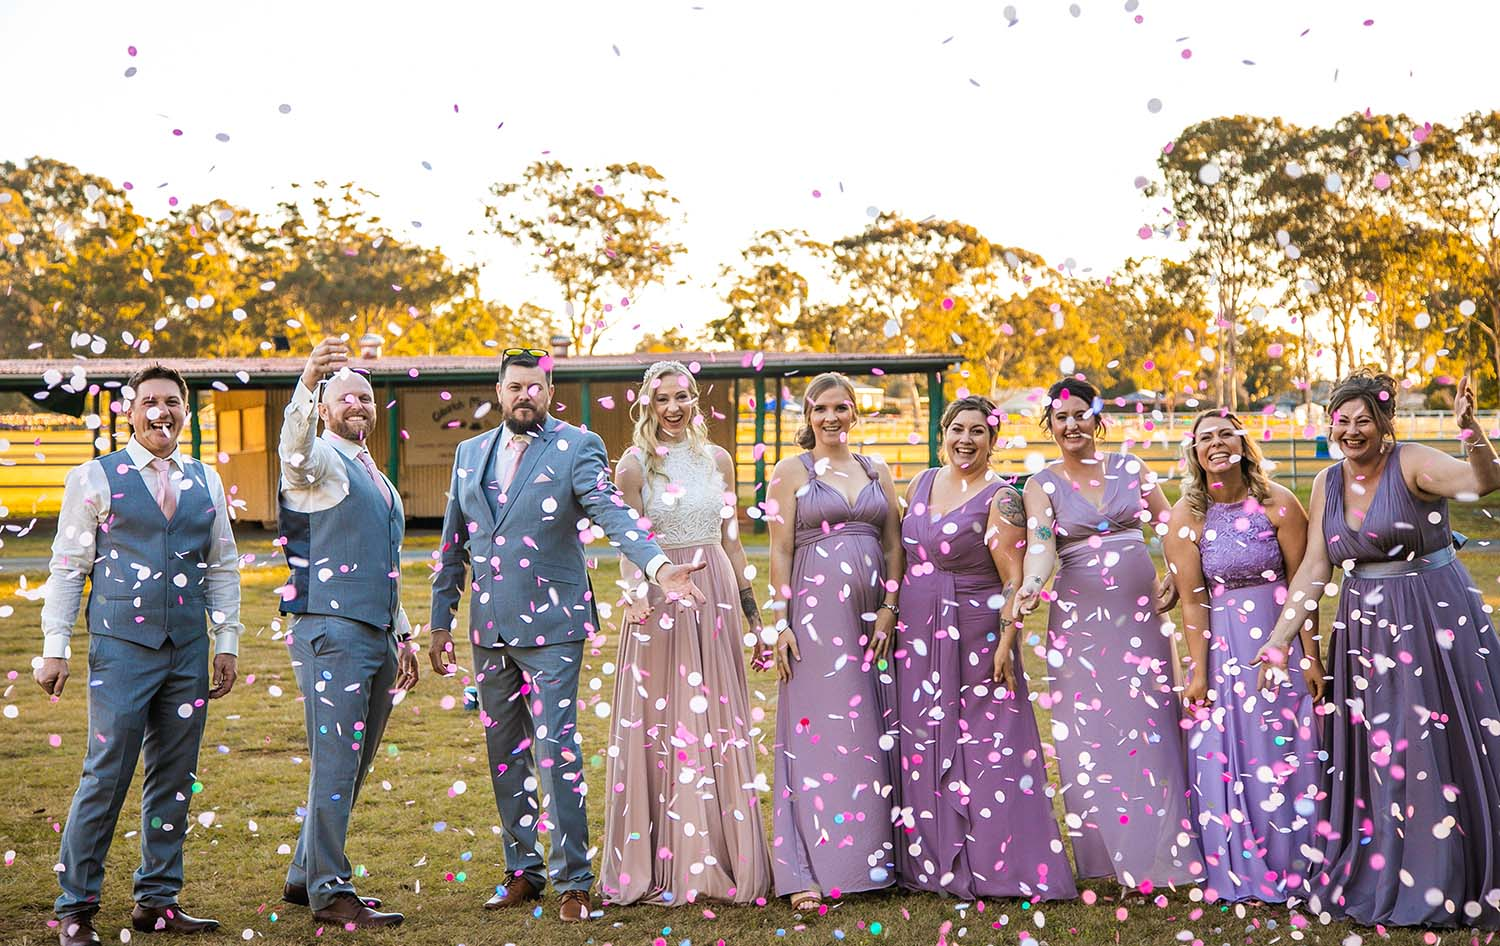 Wedding Photography – bridal party with confetti